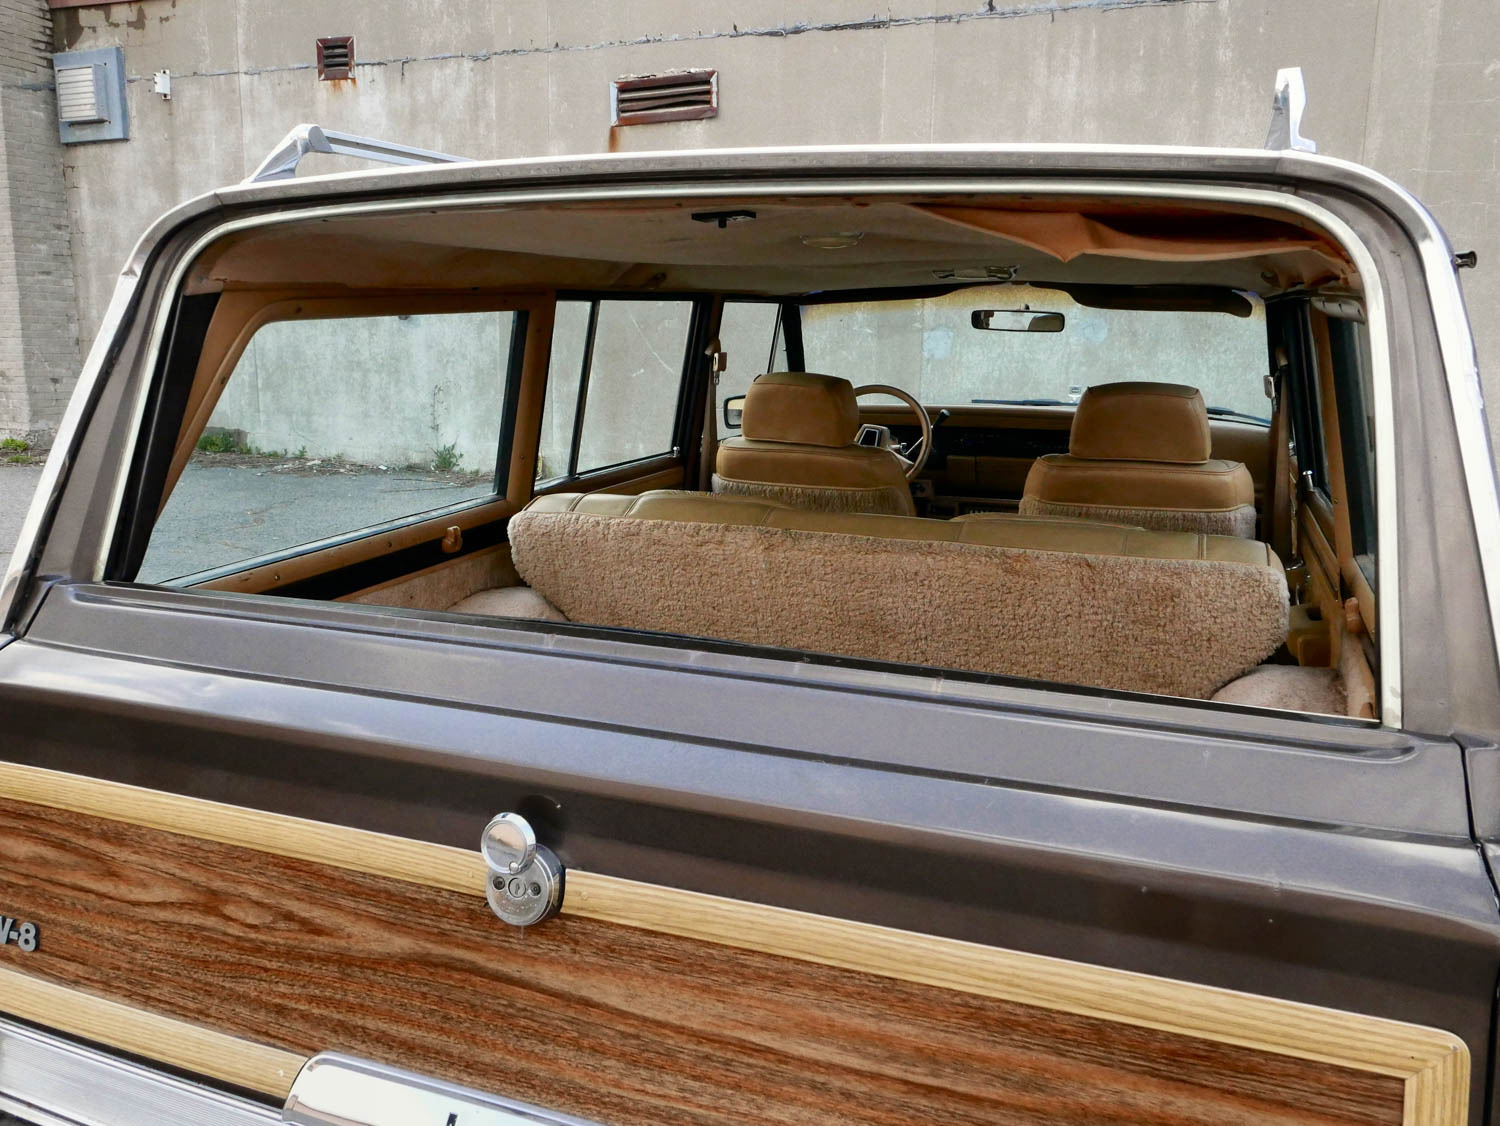 1987 Jeep Grand Wagoneer window down